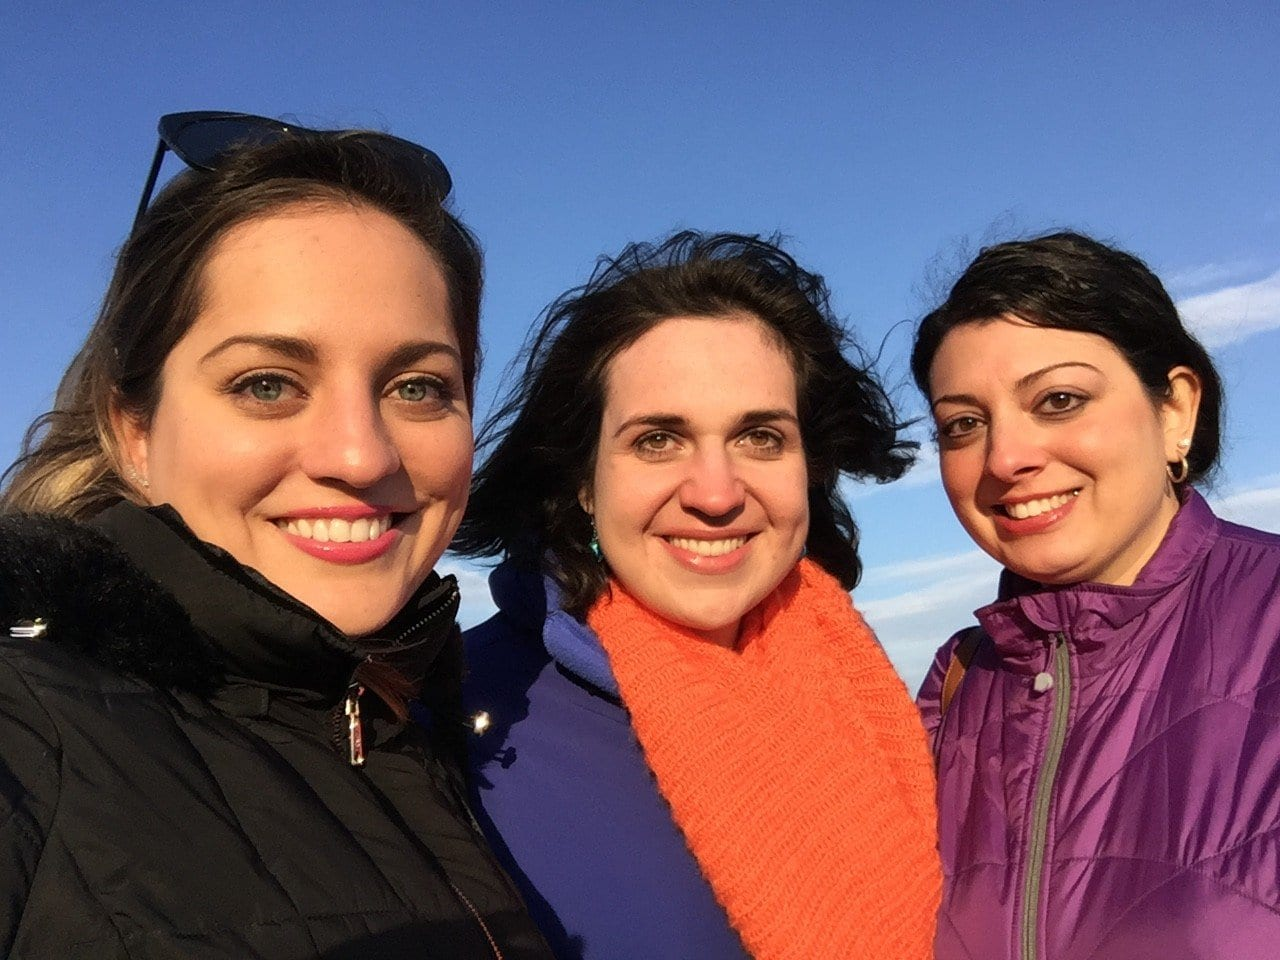 Kate, Lisa and Alexa in Rockport